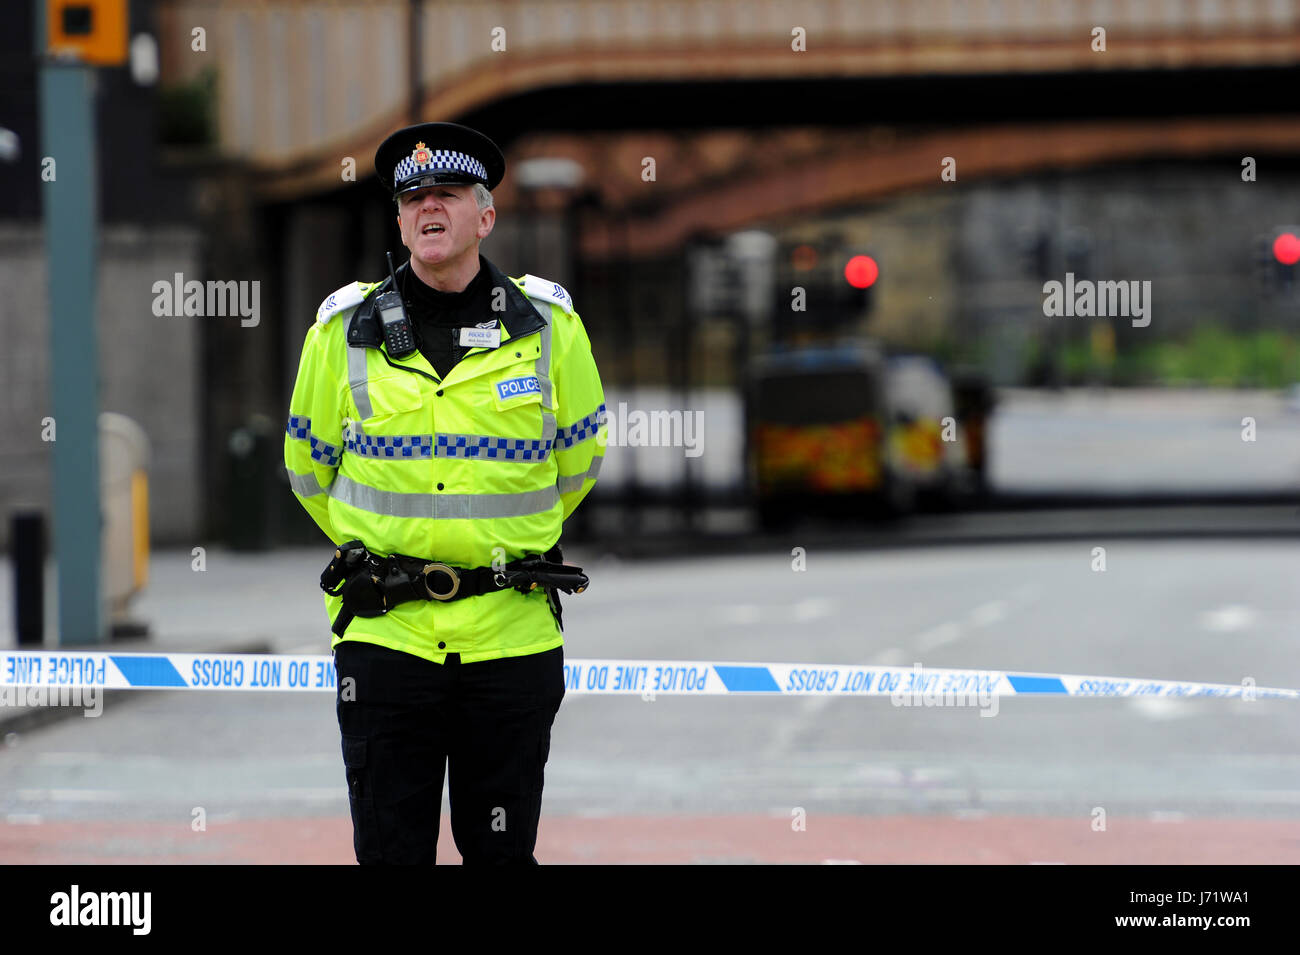 Manchester, UK. 23rd May, 2017. The scene outside the Manchester Arena, Manchester UK,  the morning after a suspected - Stock Image